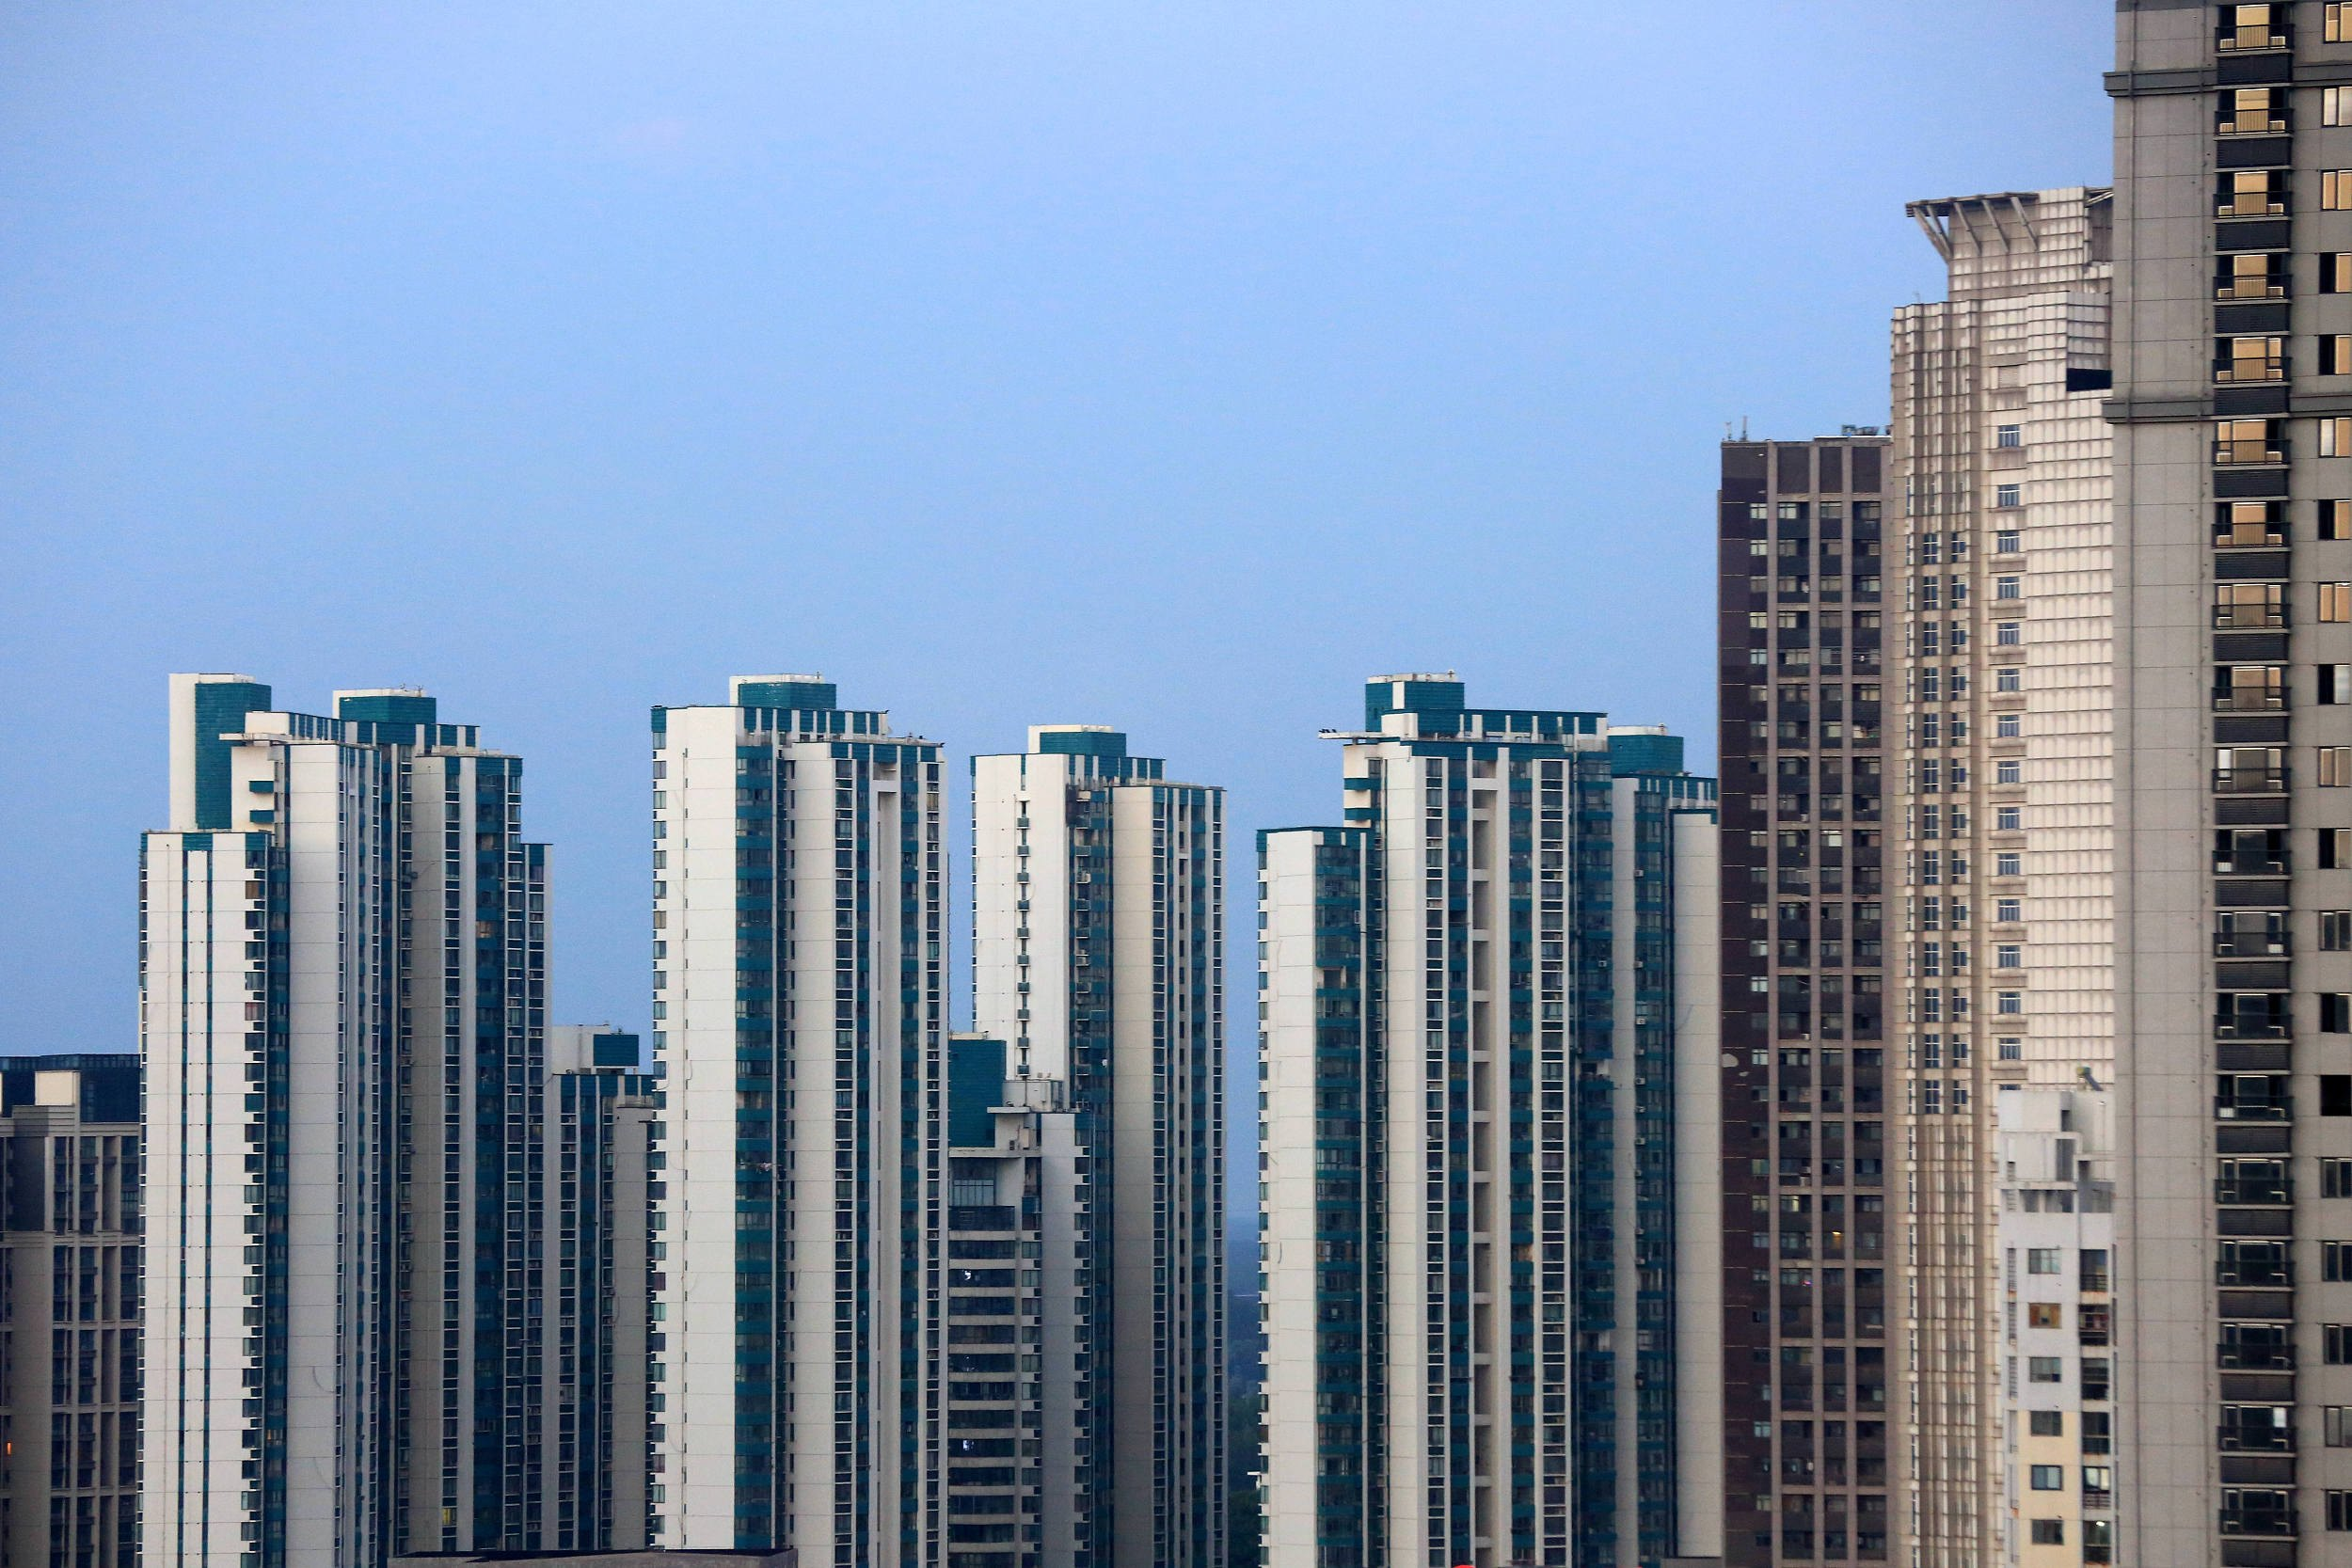 China rolls out 200 policies in H1 to cool housing market